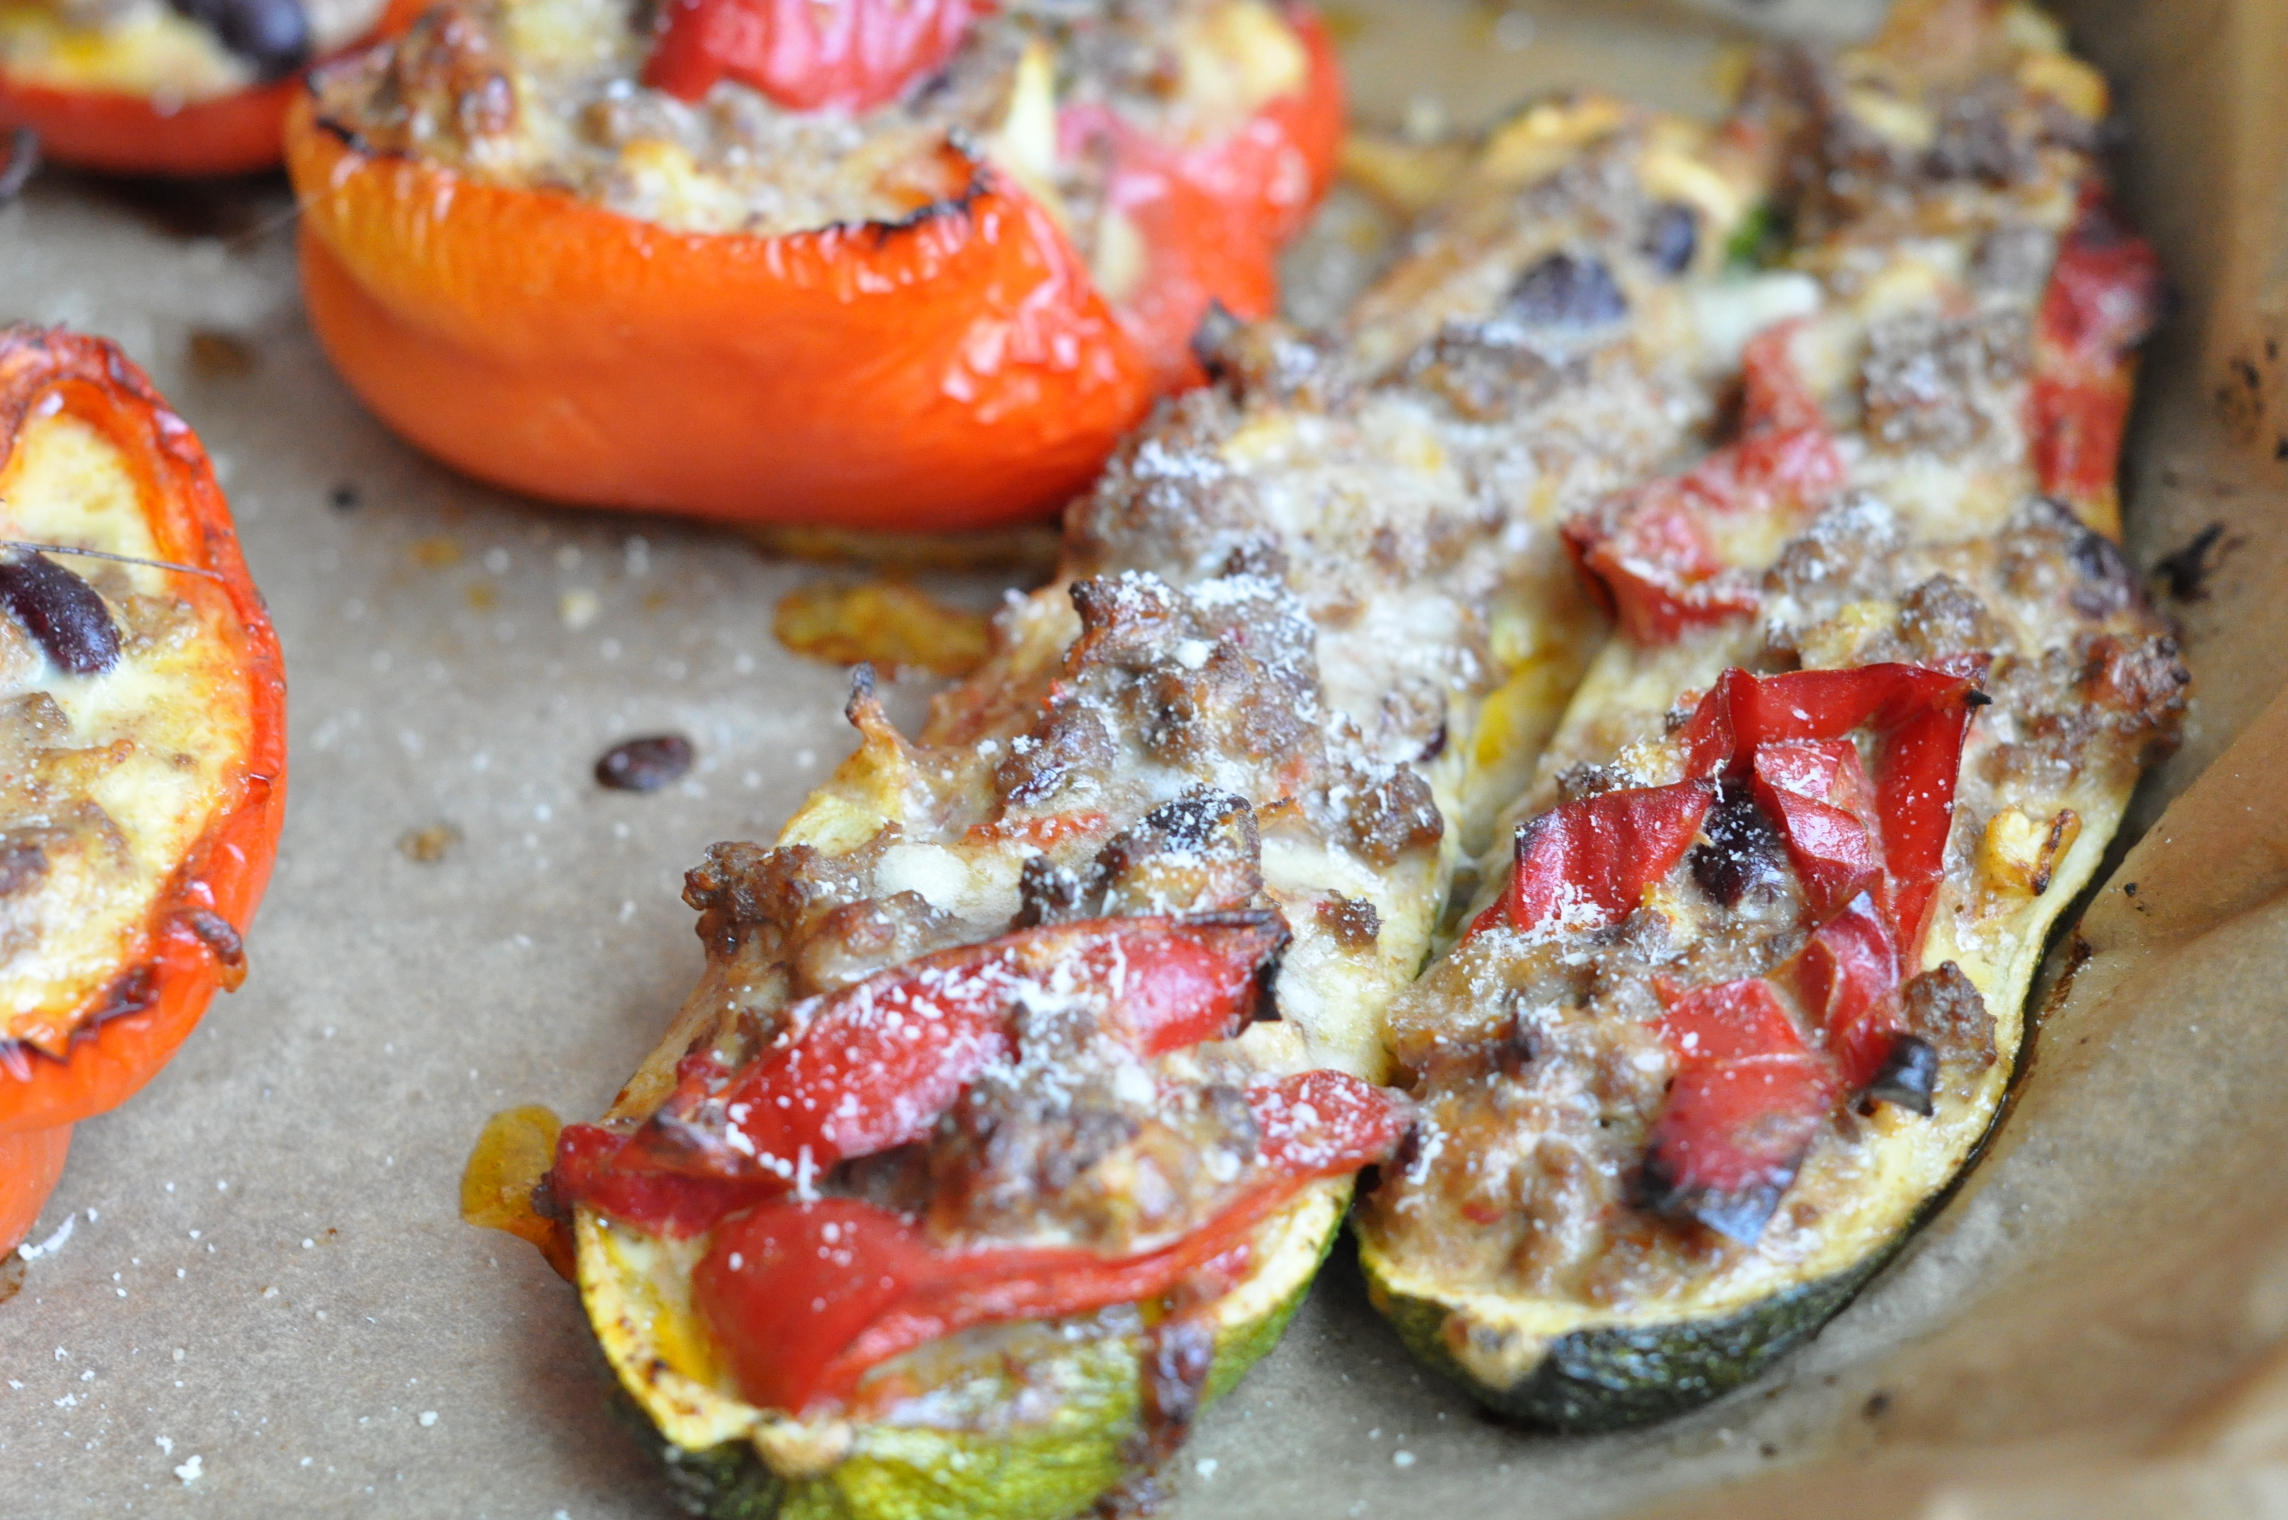 Stuffed peppers and zucchinis